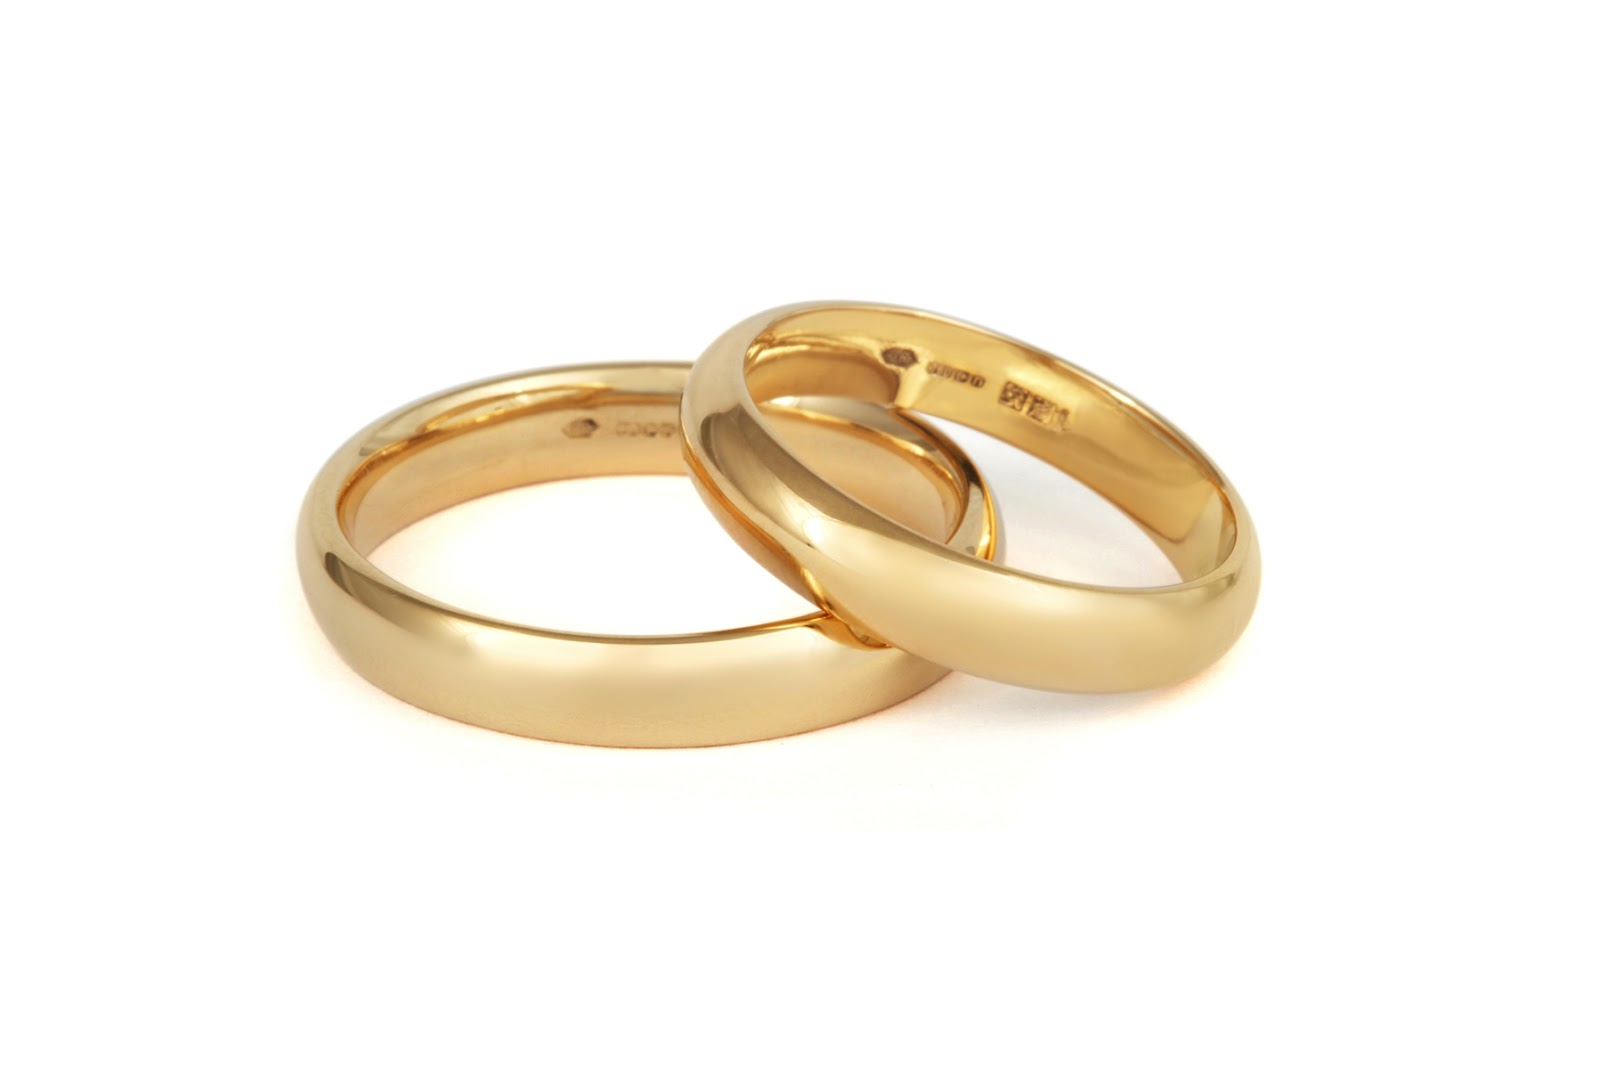 Circle Wedding Rings Image